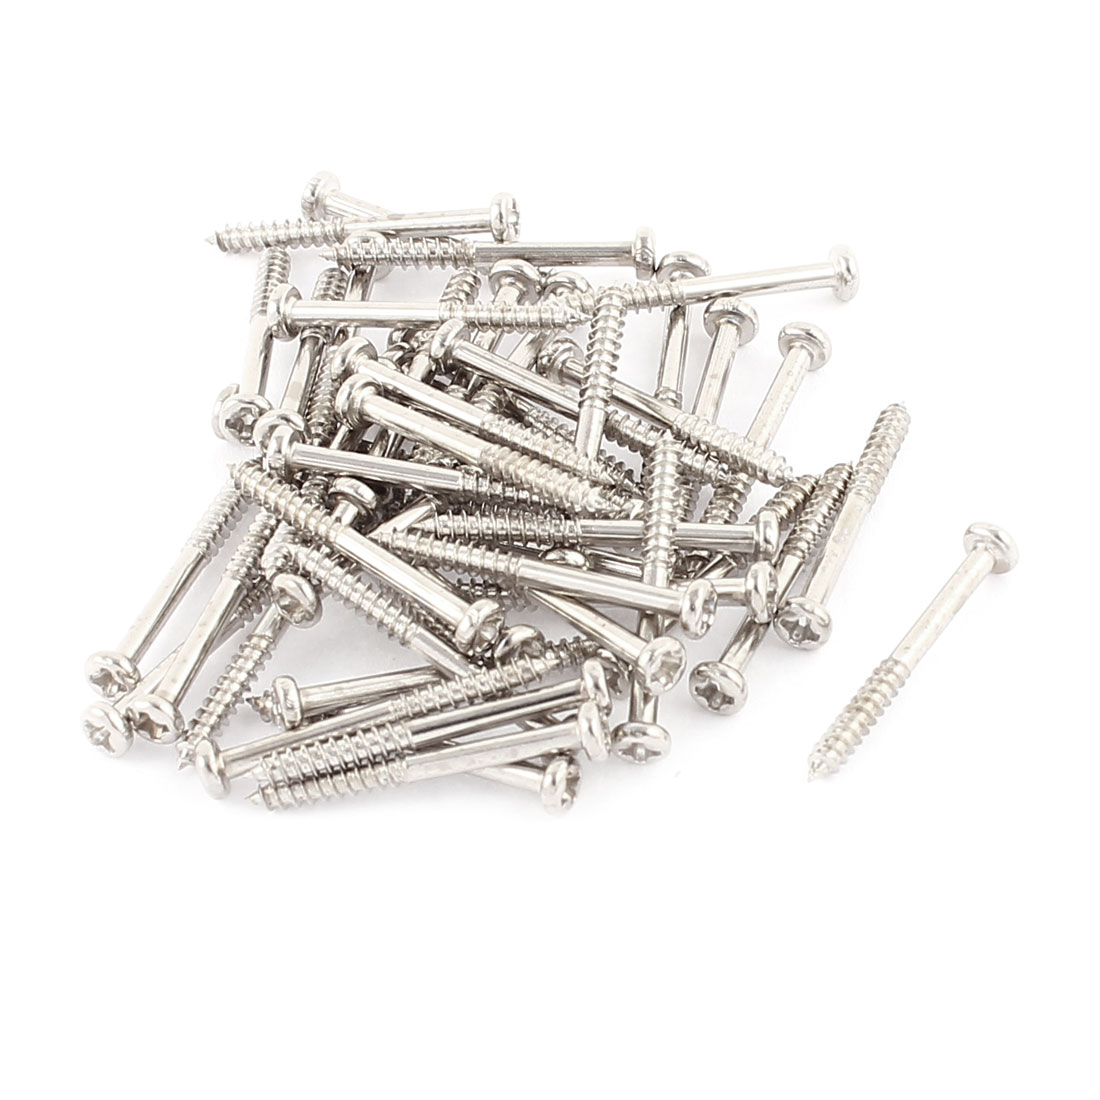 50 Pcs M2x20mm Stainless Steel Phillips Round Head Self Tapping Screws Bolts